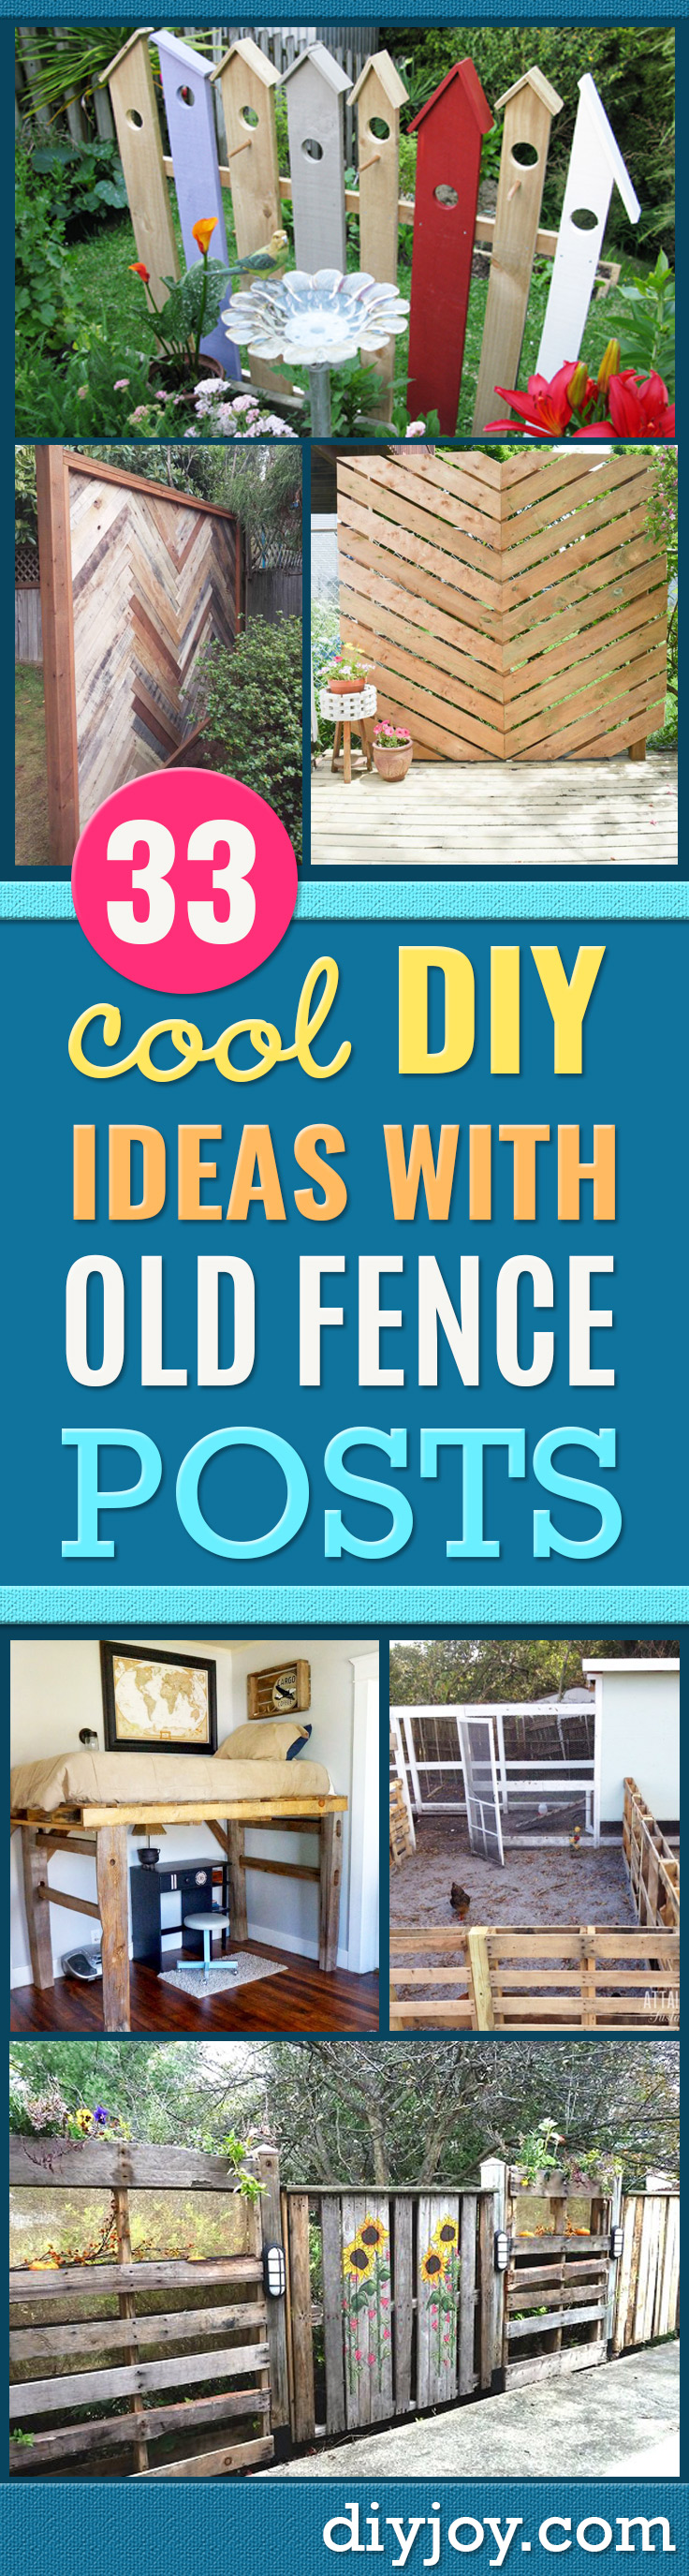 DIY Ideas With Old Fence Posts - Rustic Farmhouse Decor Tutorials and Projects Made With An Old Fence Post - Easy Vintage Shelving, Wall Art, Picture Frames and Home Decor for Kitchen, Living Room and Bathroom - Creative Country Crafts, Seating, Furniture, Patio Decor and Rustic Wall Art and Accessories to Make and Sell